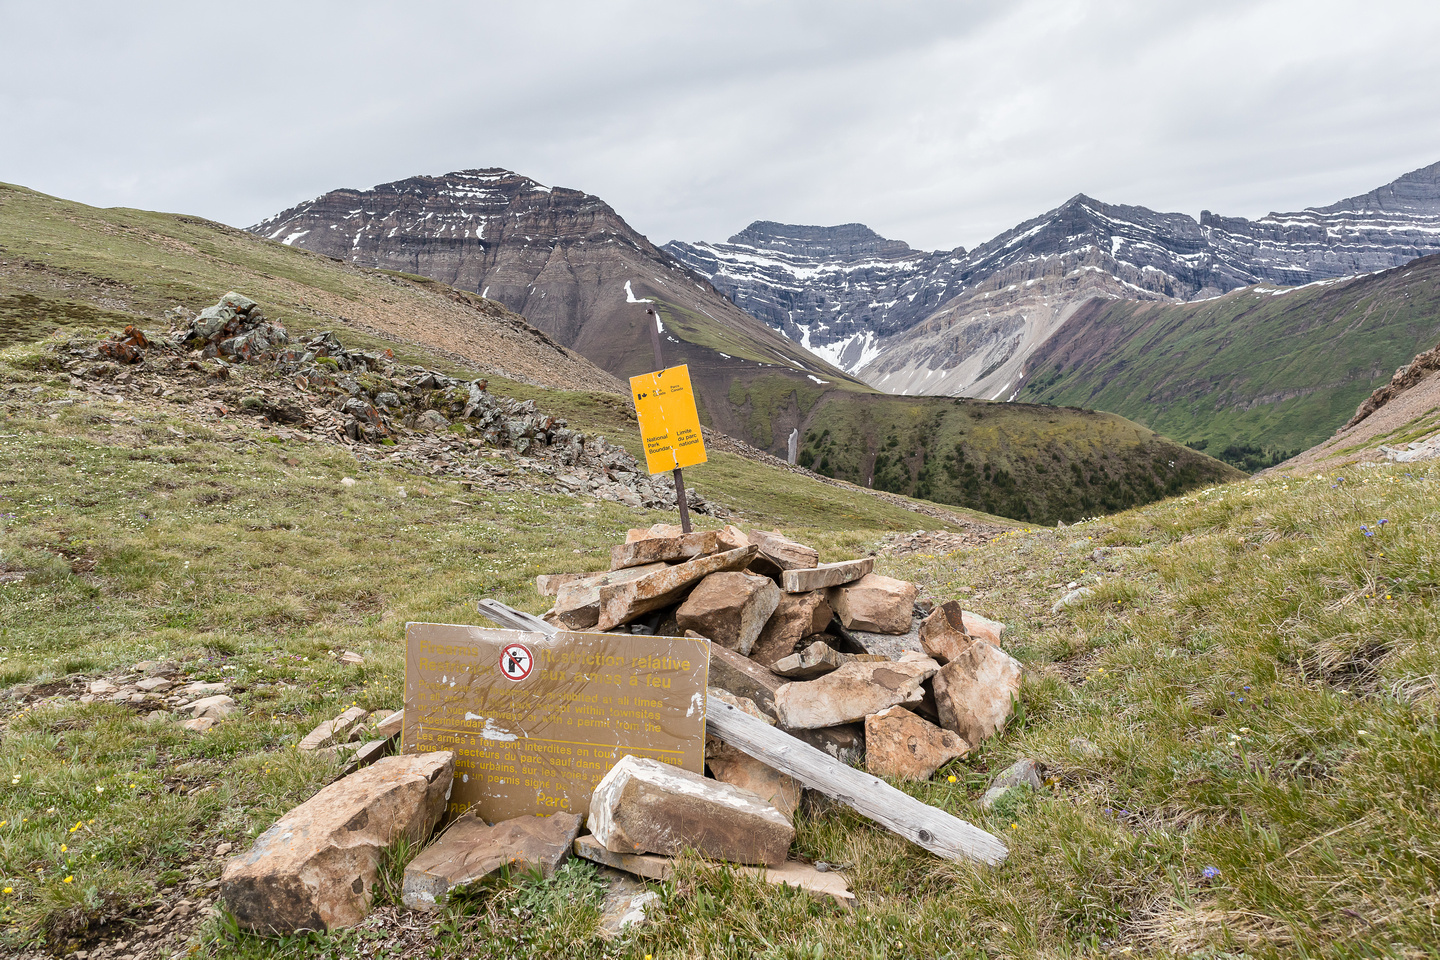 Shale Pass. The Banff park boundary.